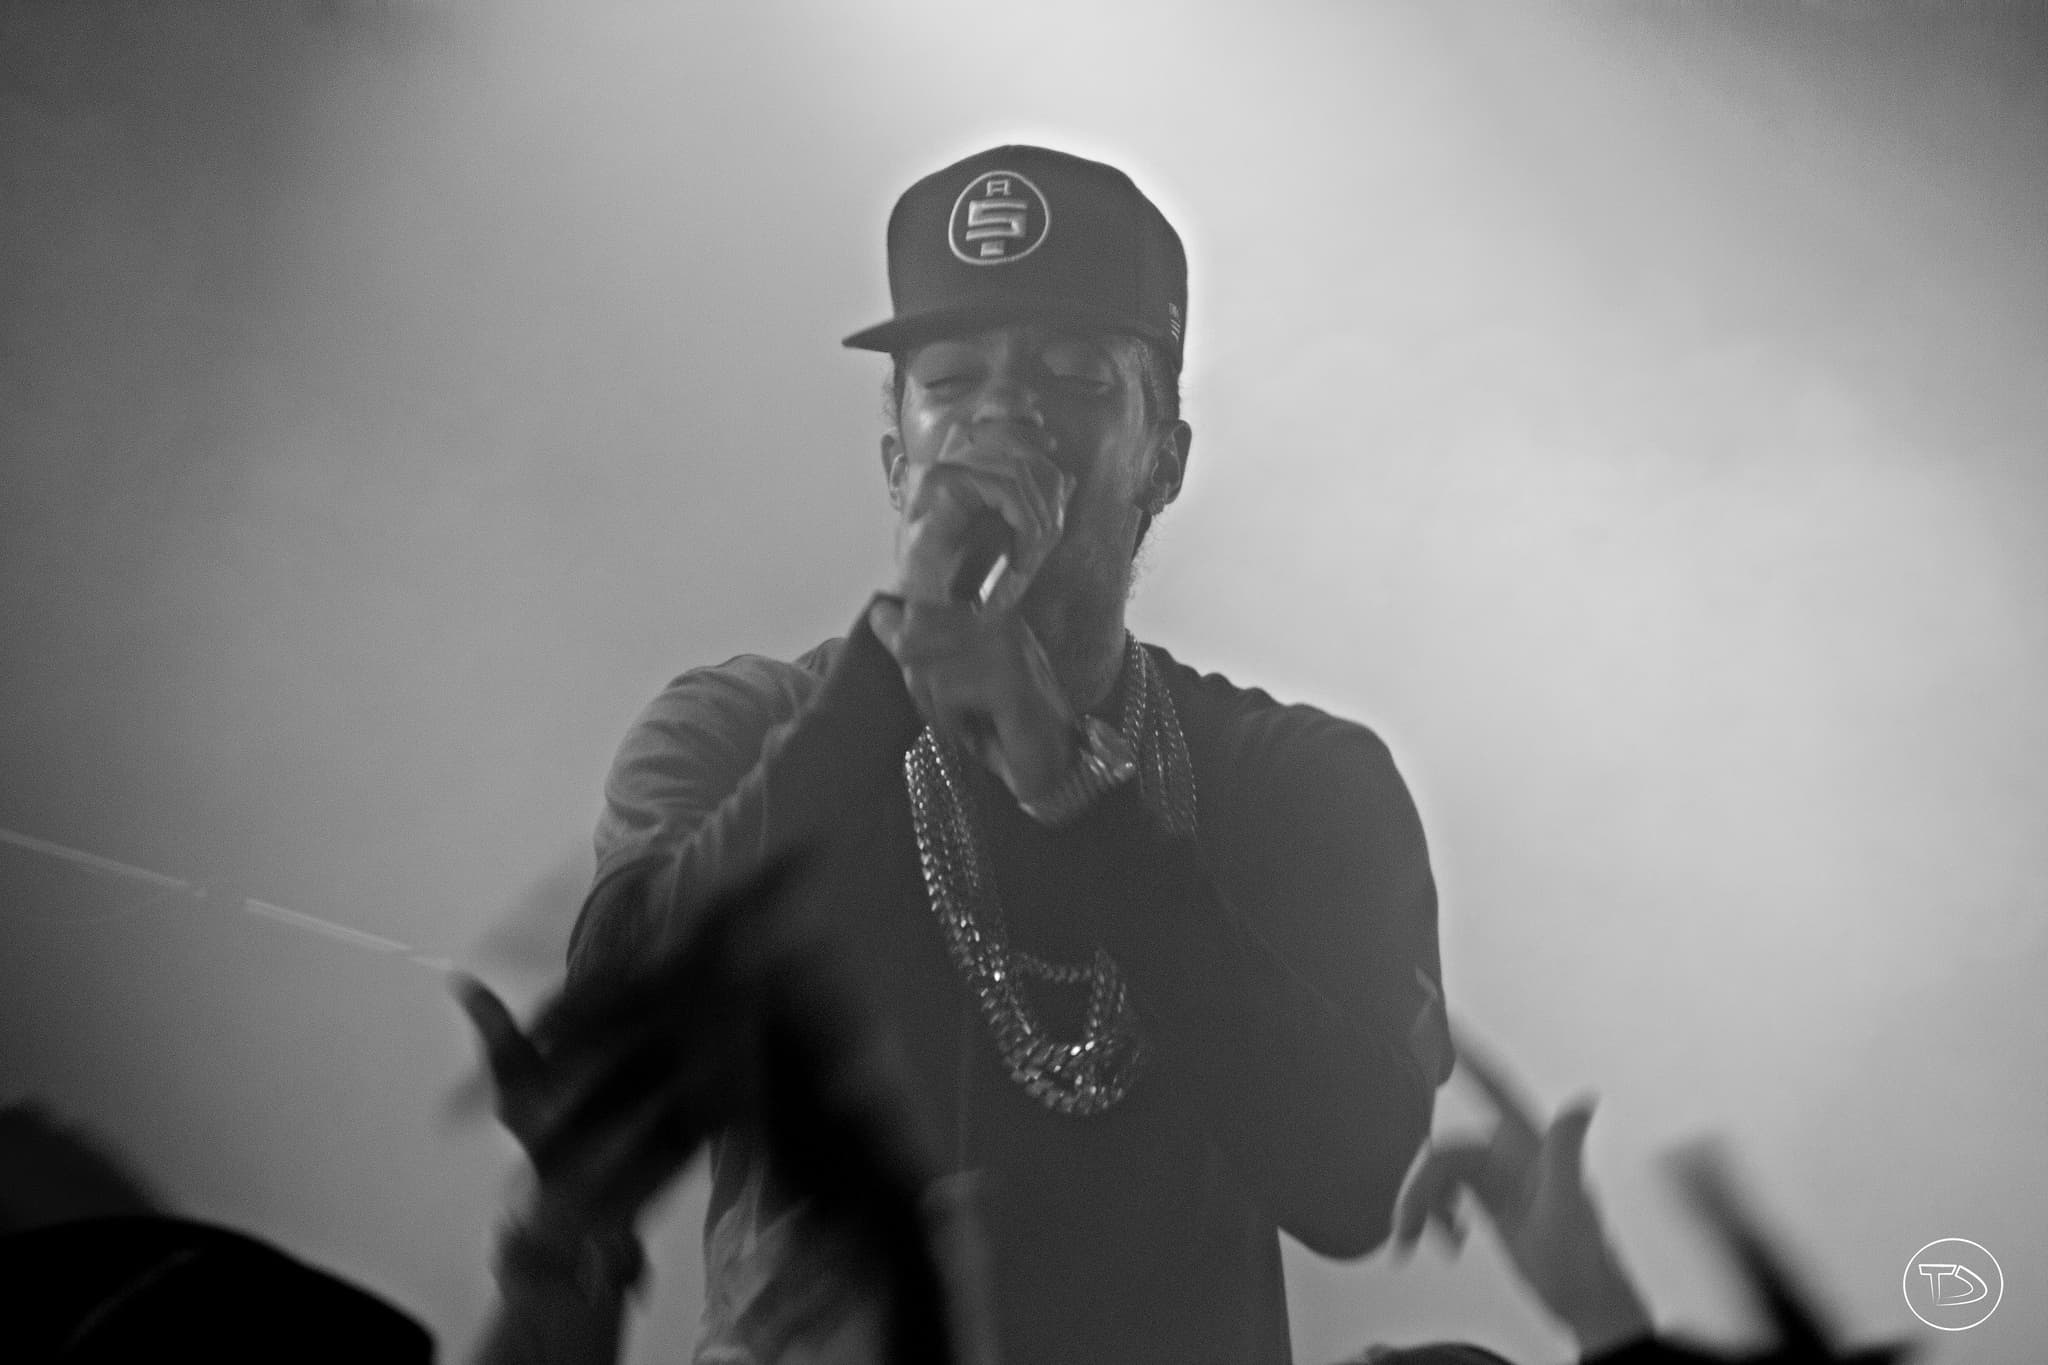 Hd Wallpapers For Android Free Download 20 Nipsey Hussle Wallpapers Hd Free Download